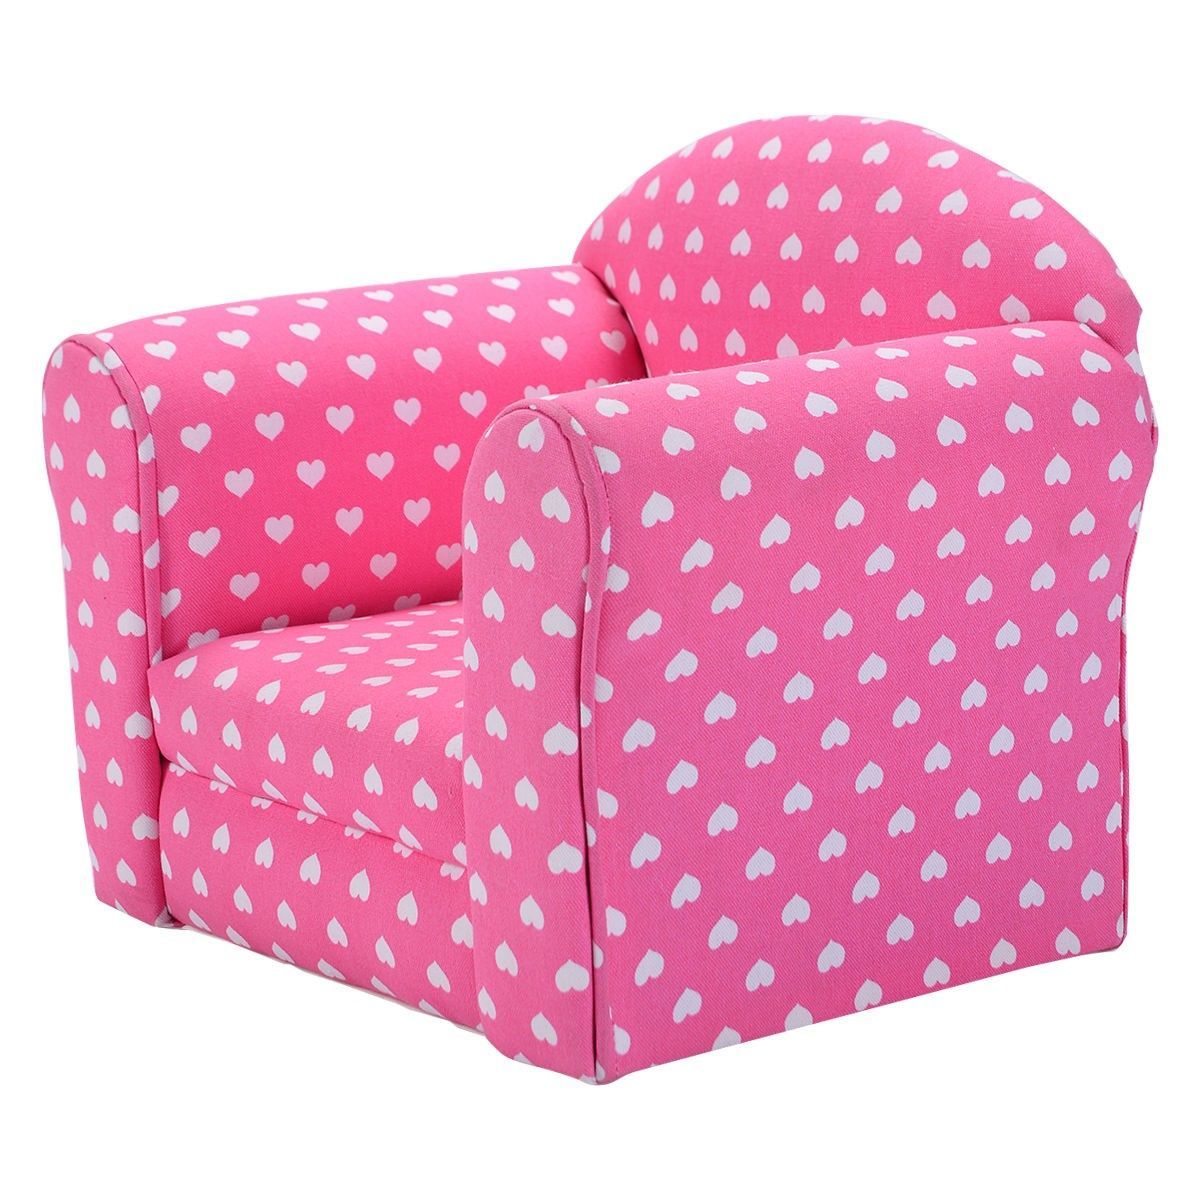 2 Color W X2f Heart Kid Sofa Armrest Chair Couch Children Living Room Toddler Furniture Furniture Kids Sofa Toddler Furniture Toddler Rooms #toddler #chair #for #living #room